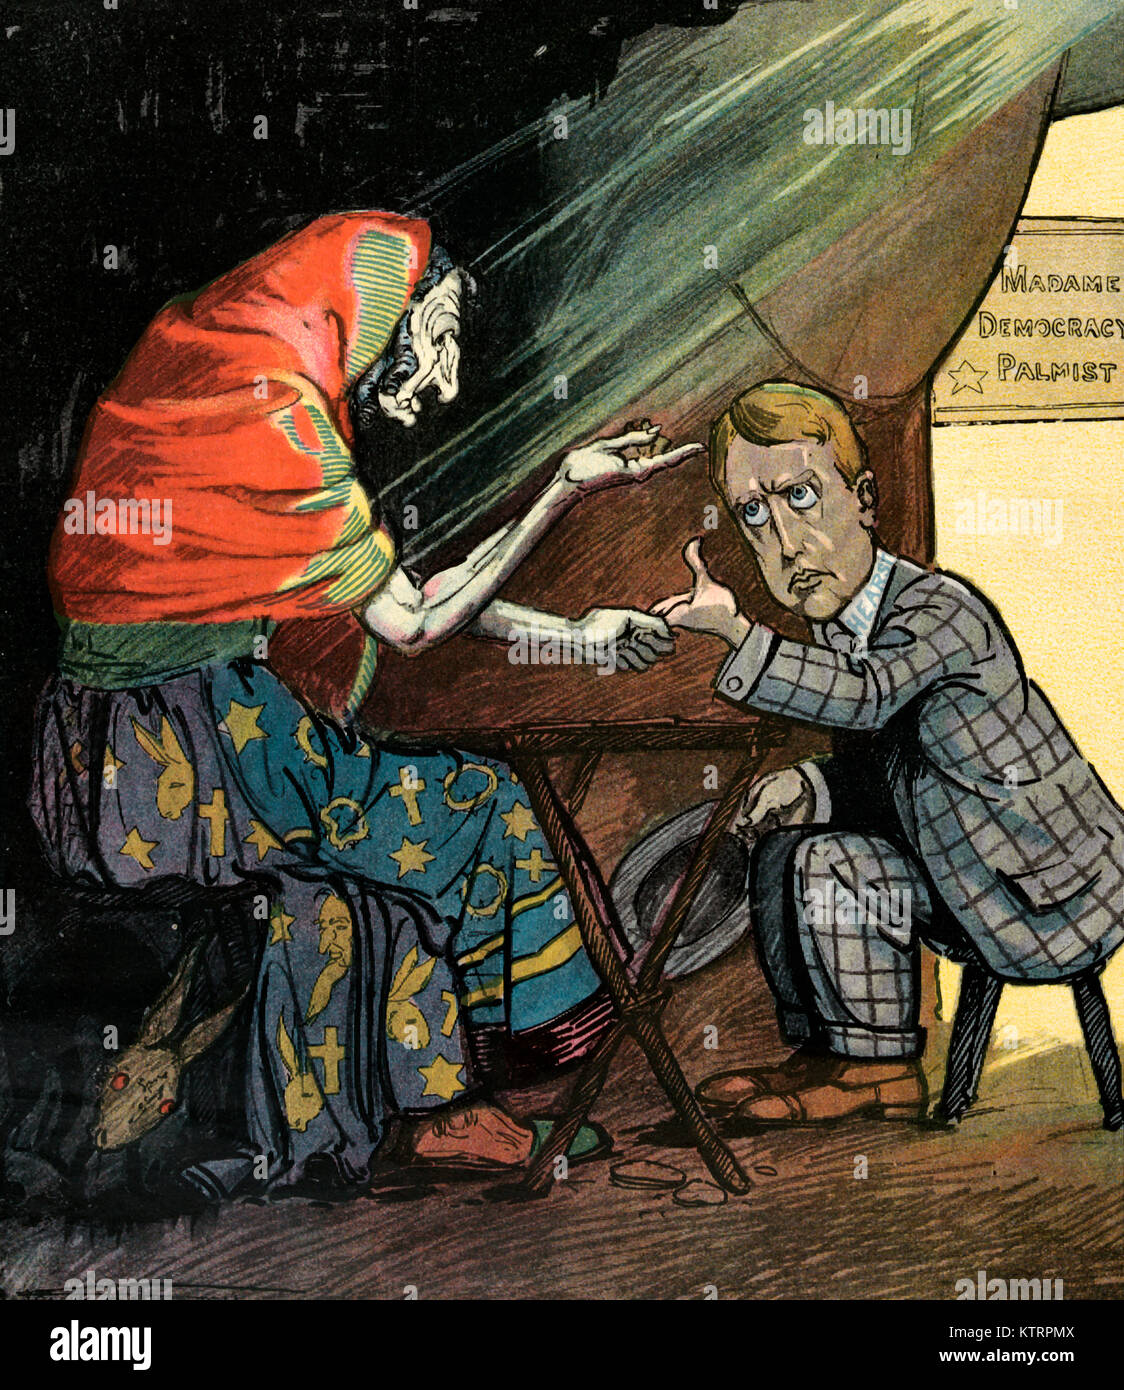 Reading his future -  Illustration shows an old woman, known as 'Madame Democracy Palmist', reading William - Stock Image